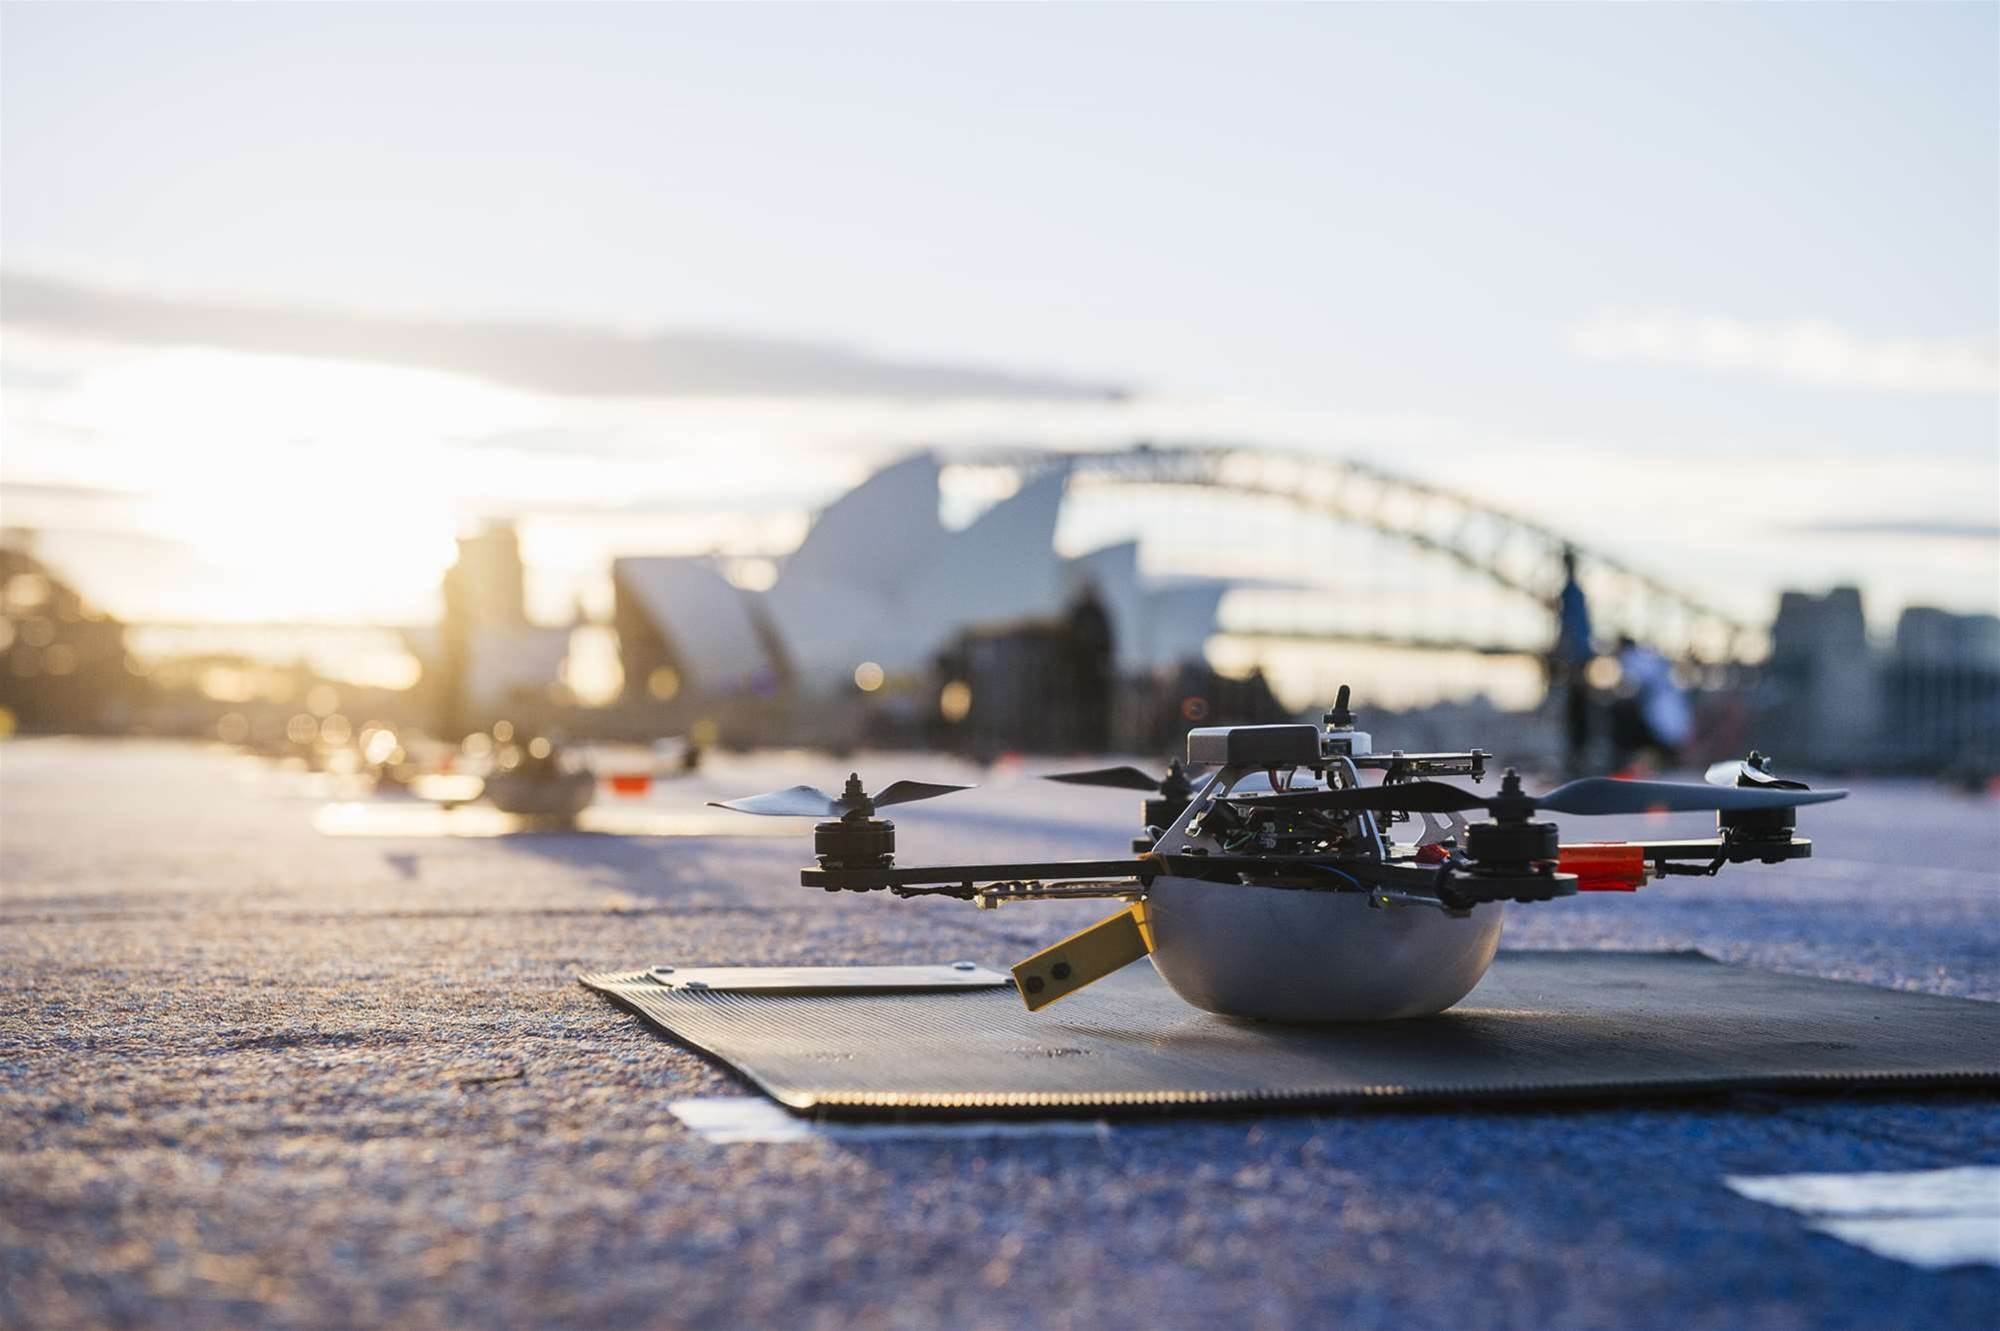 New designs, mobile tech driving drone innovation